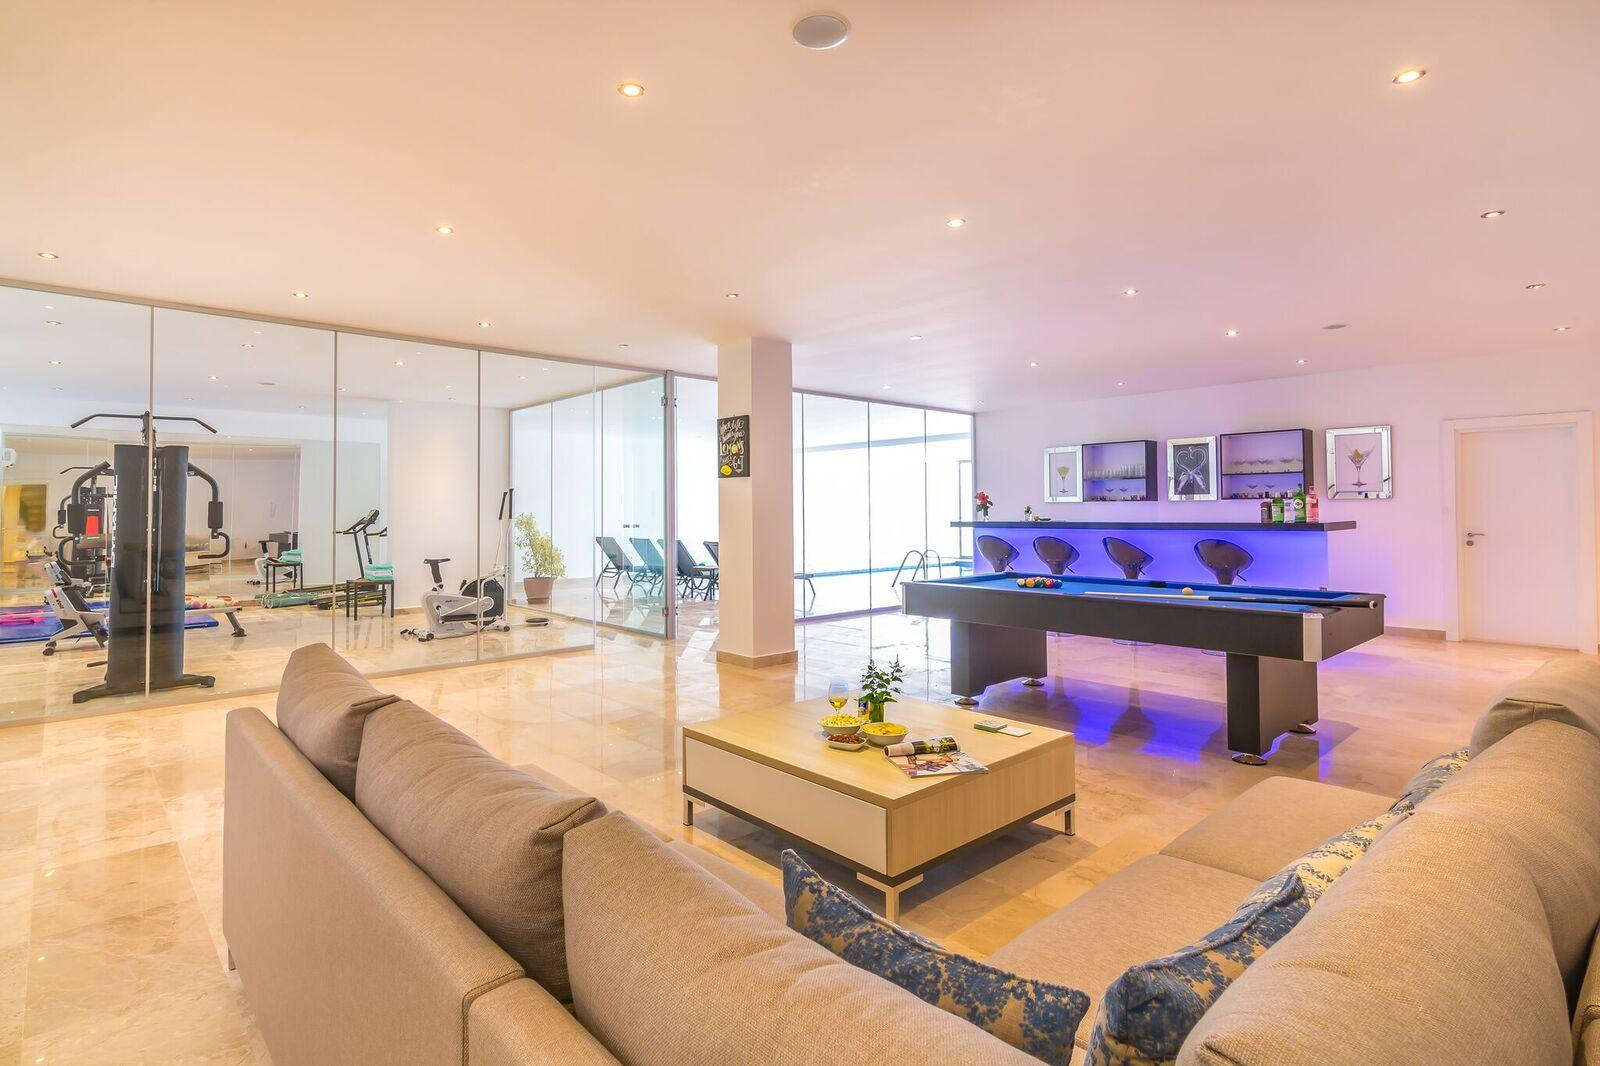 Gym, Indoor Pool, Bar, Pool Table and social area